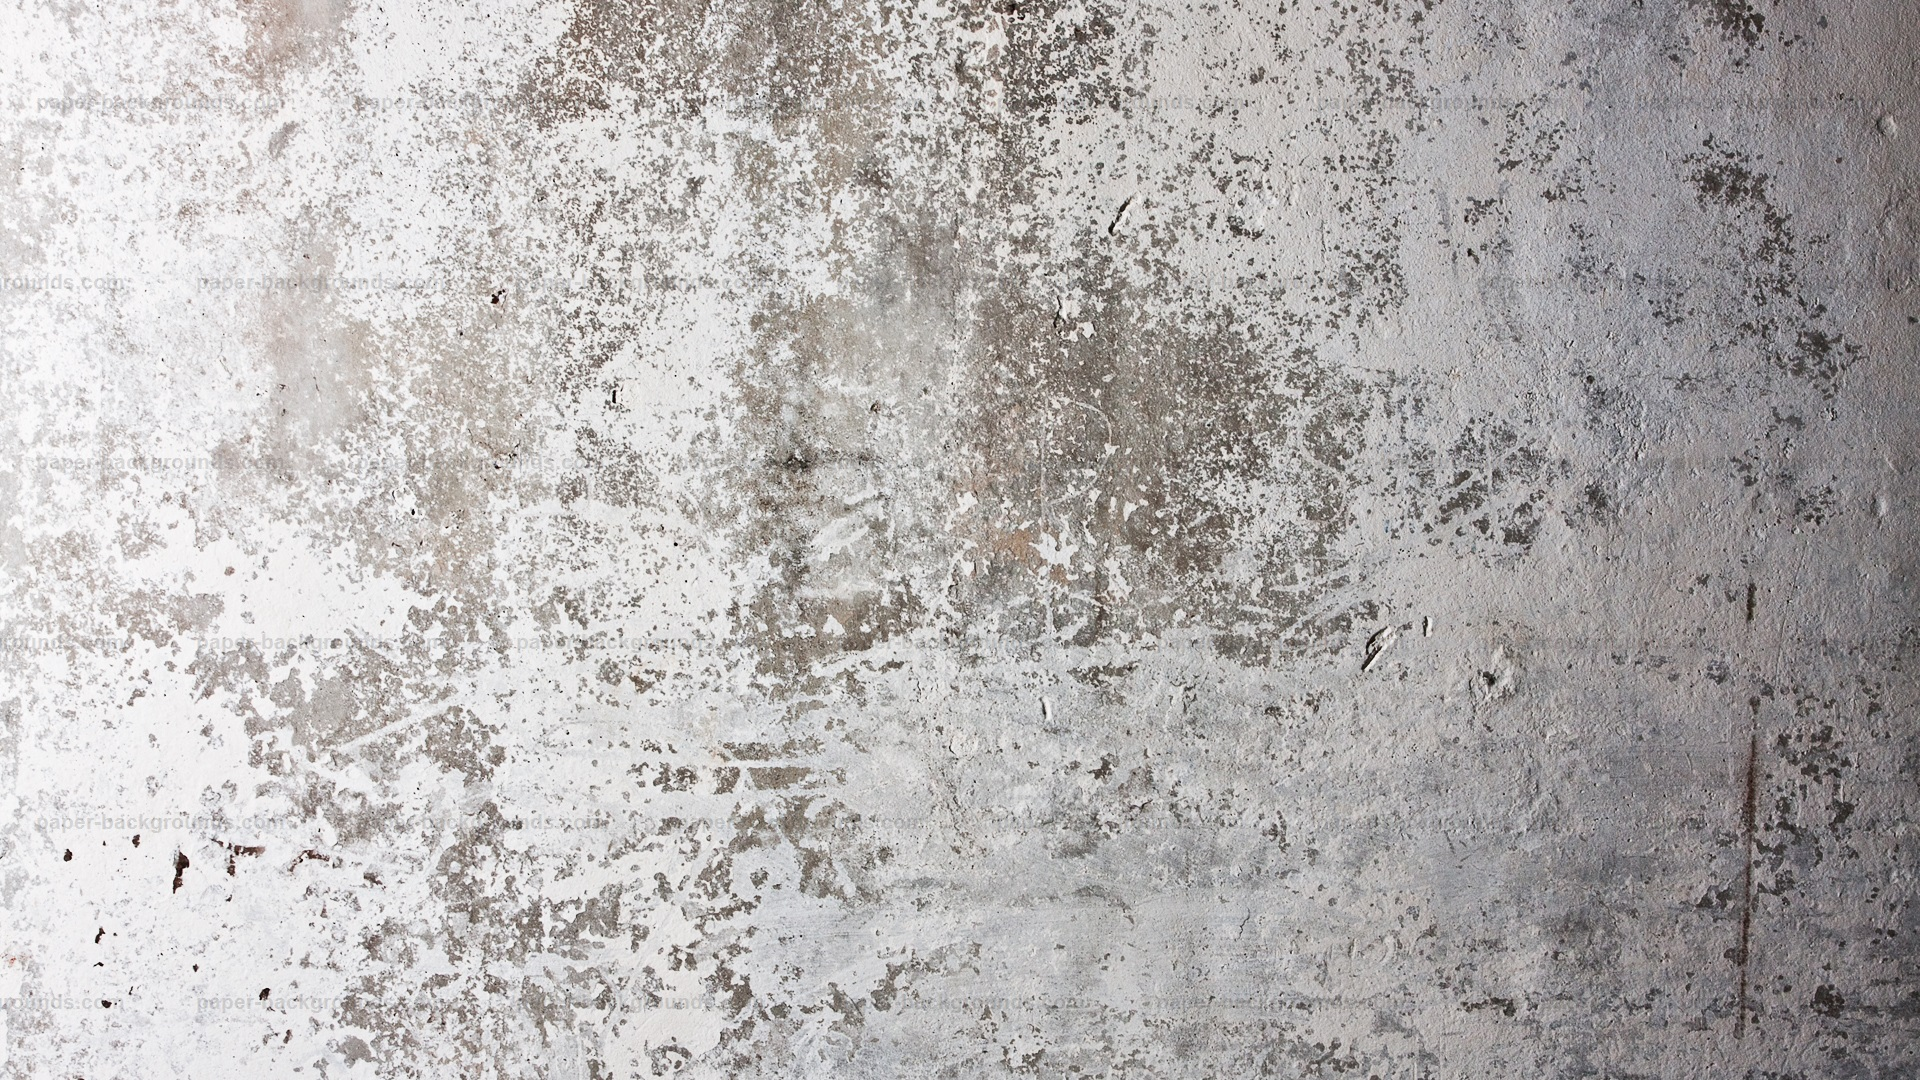 hd grunge wallpaper texture - photo #37